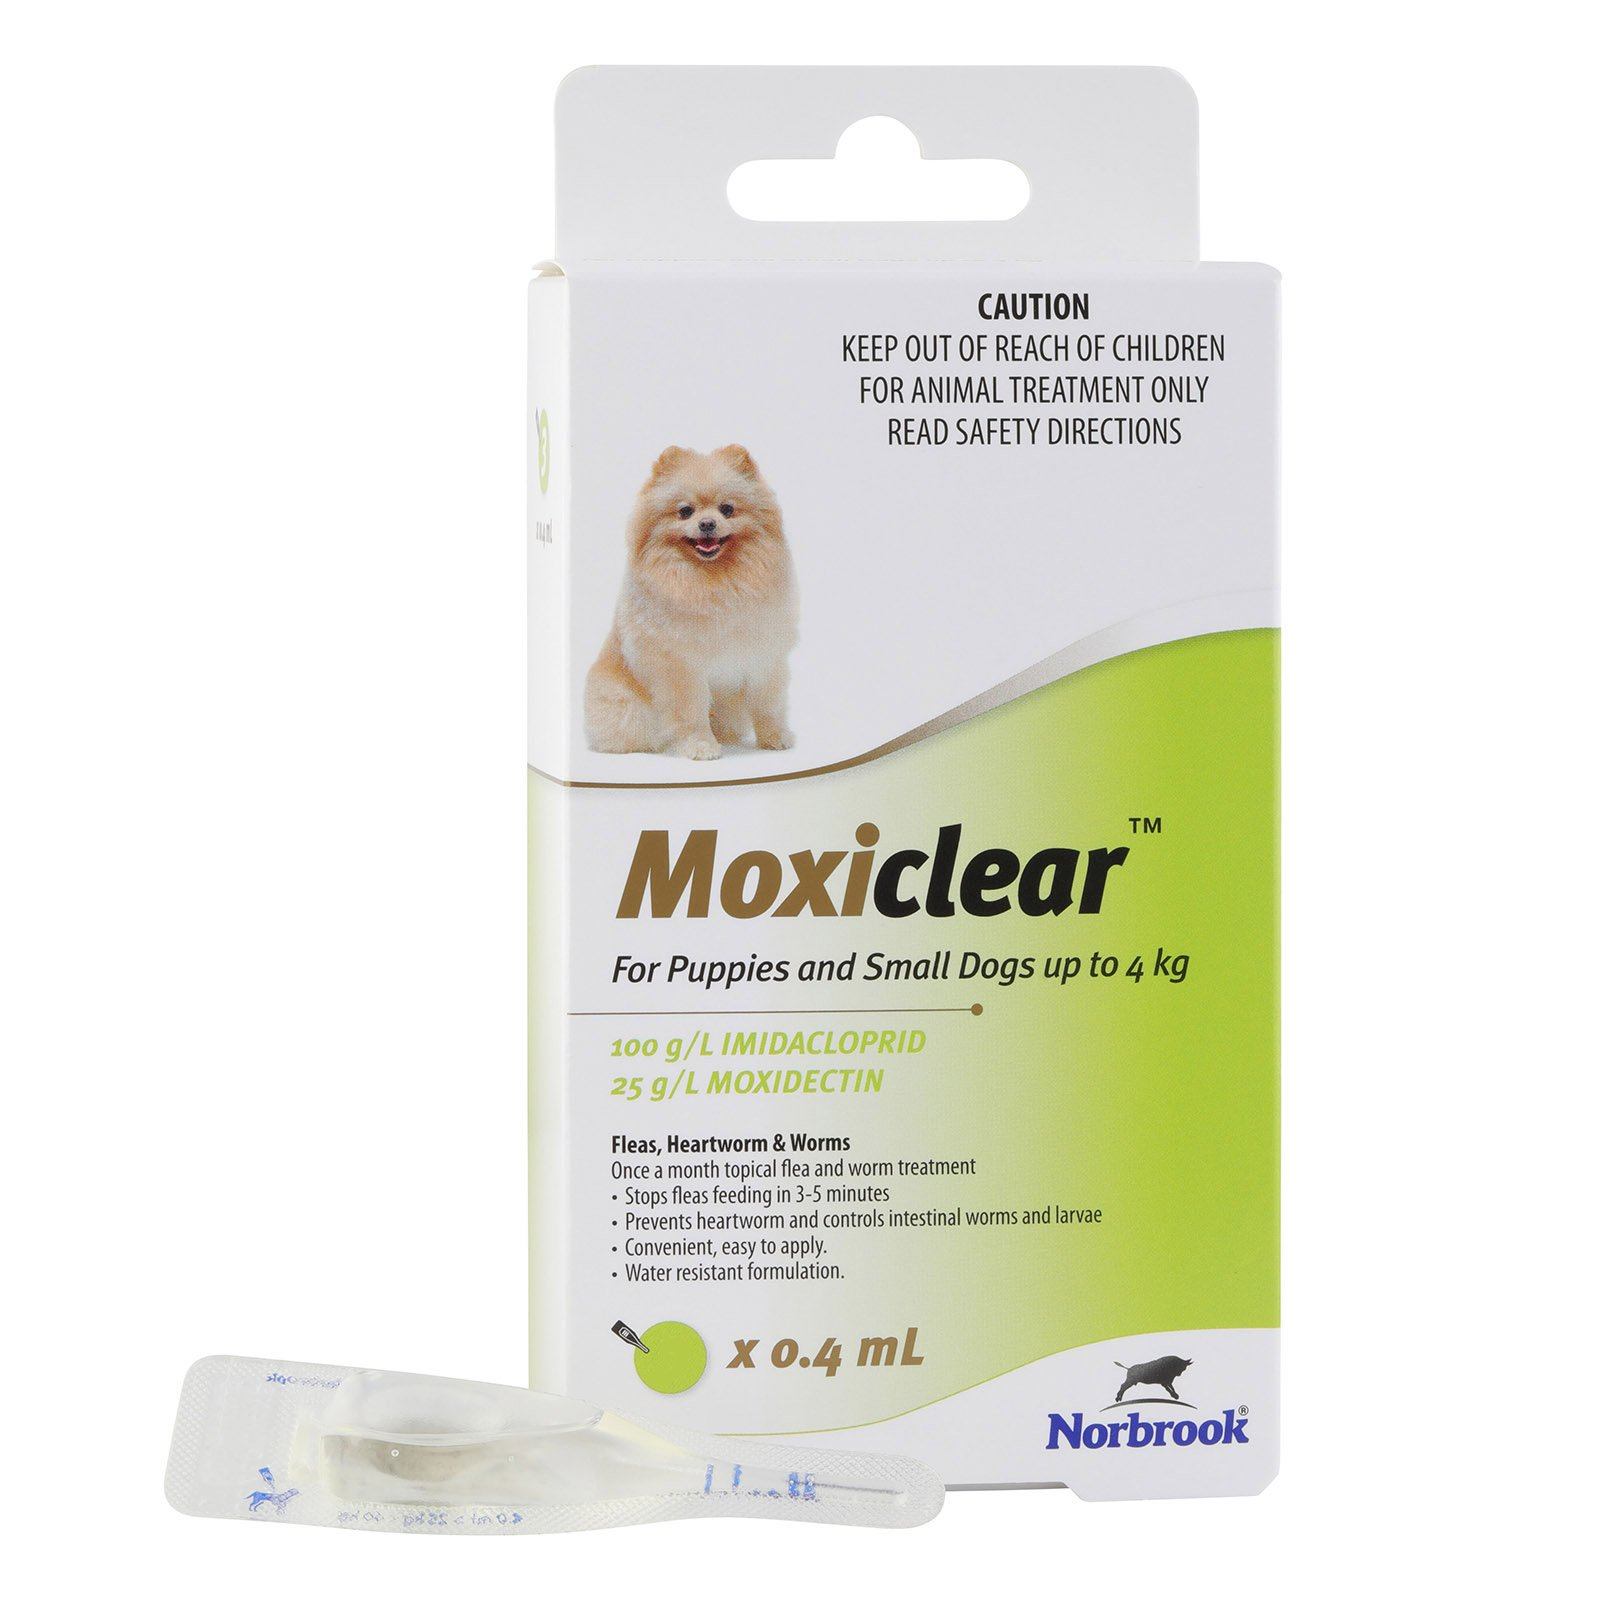 636996665896007486Moxiclear-for-Puppies-Small-Dogs-up-to-4kg-green.jpg